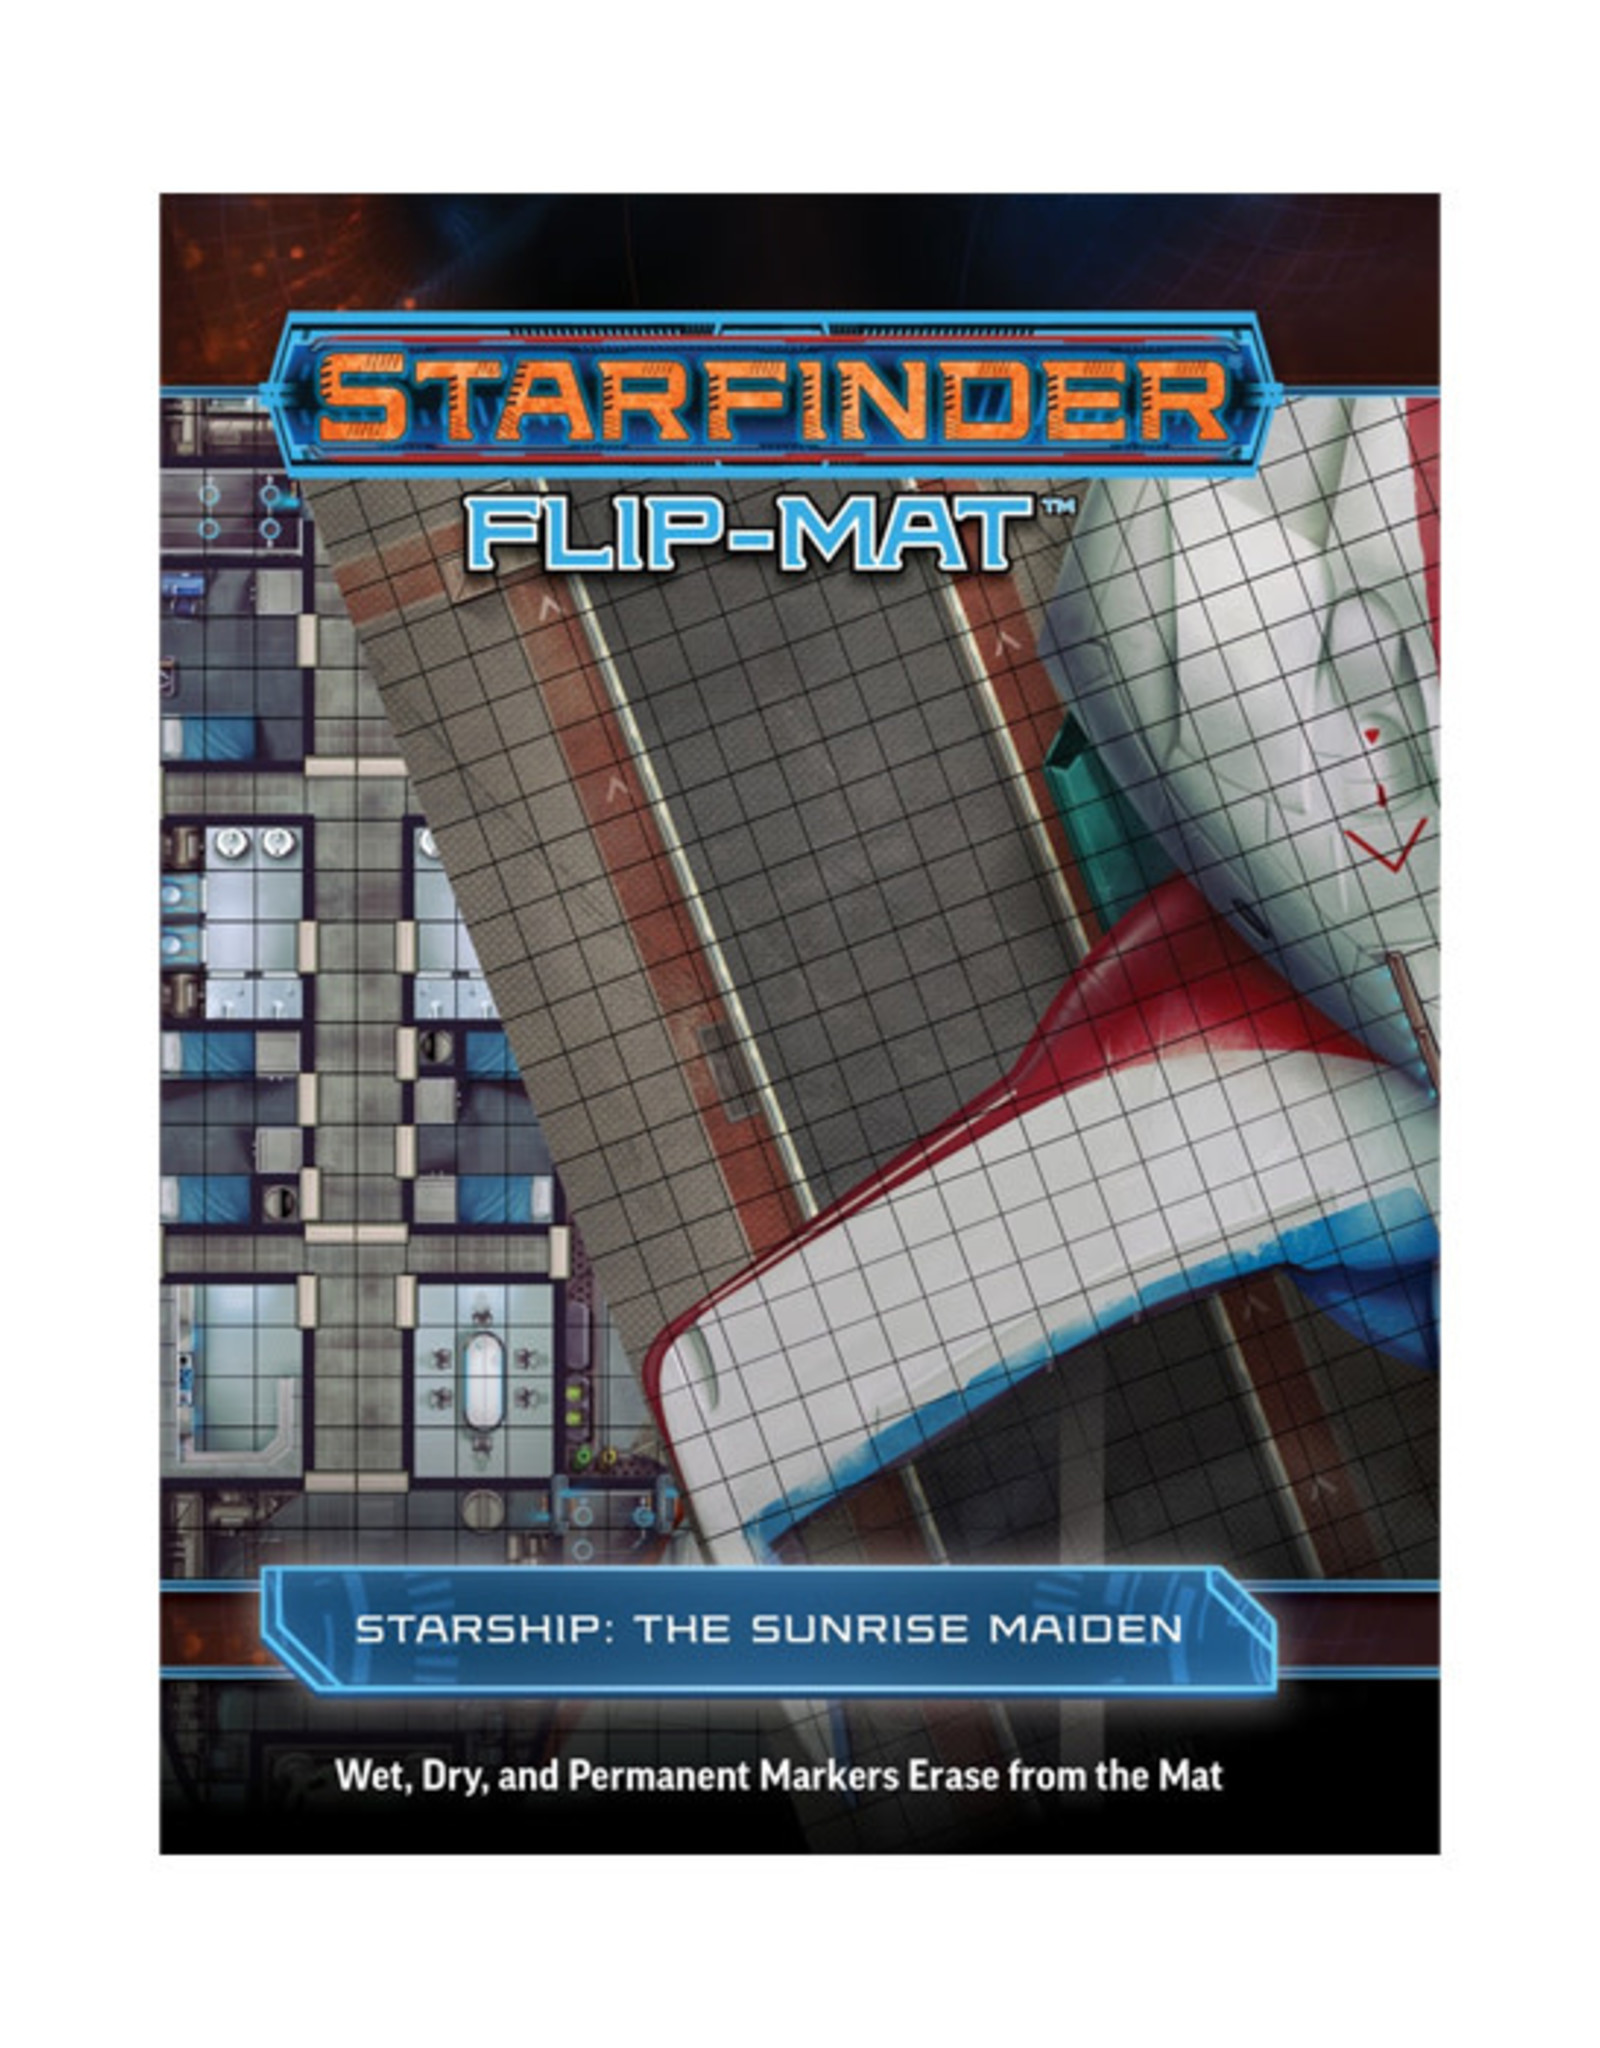 Starfinder Starfinder: Flip-Mat - Starship: The Sunrise Maiden